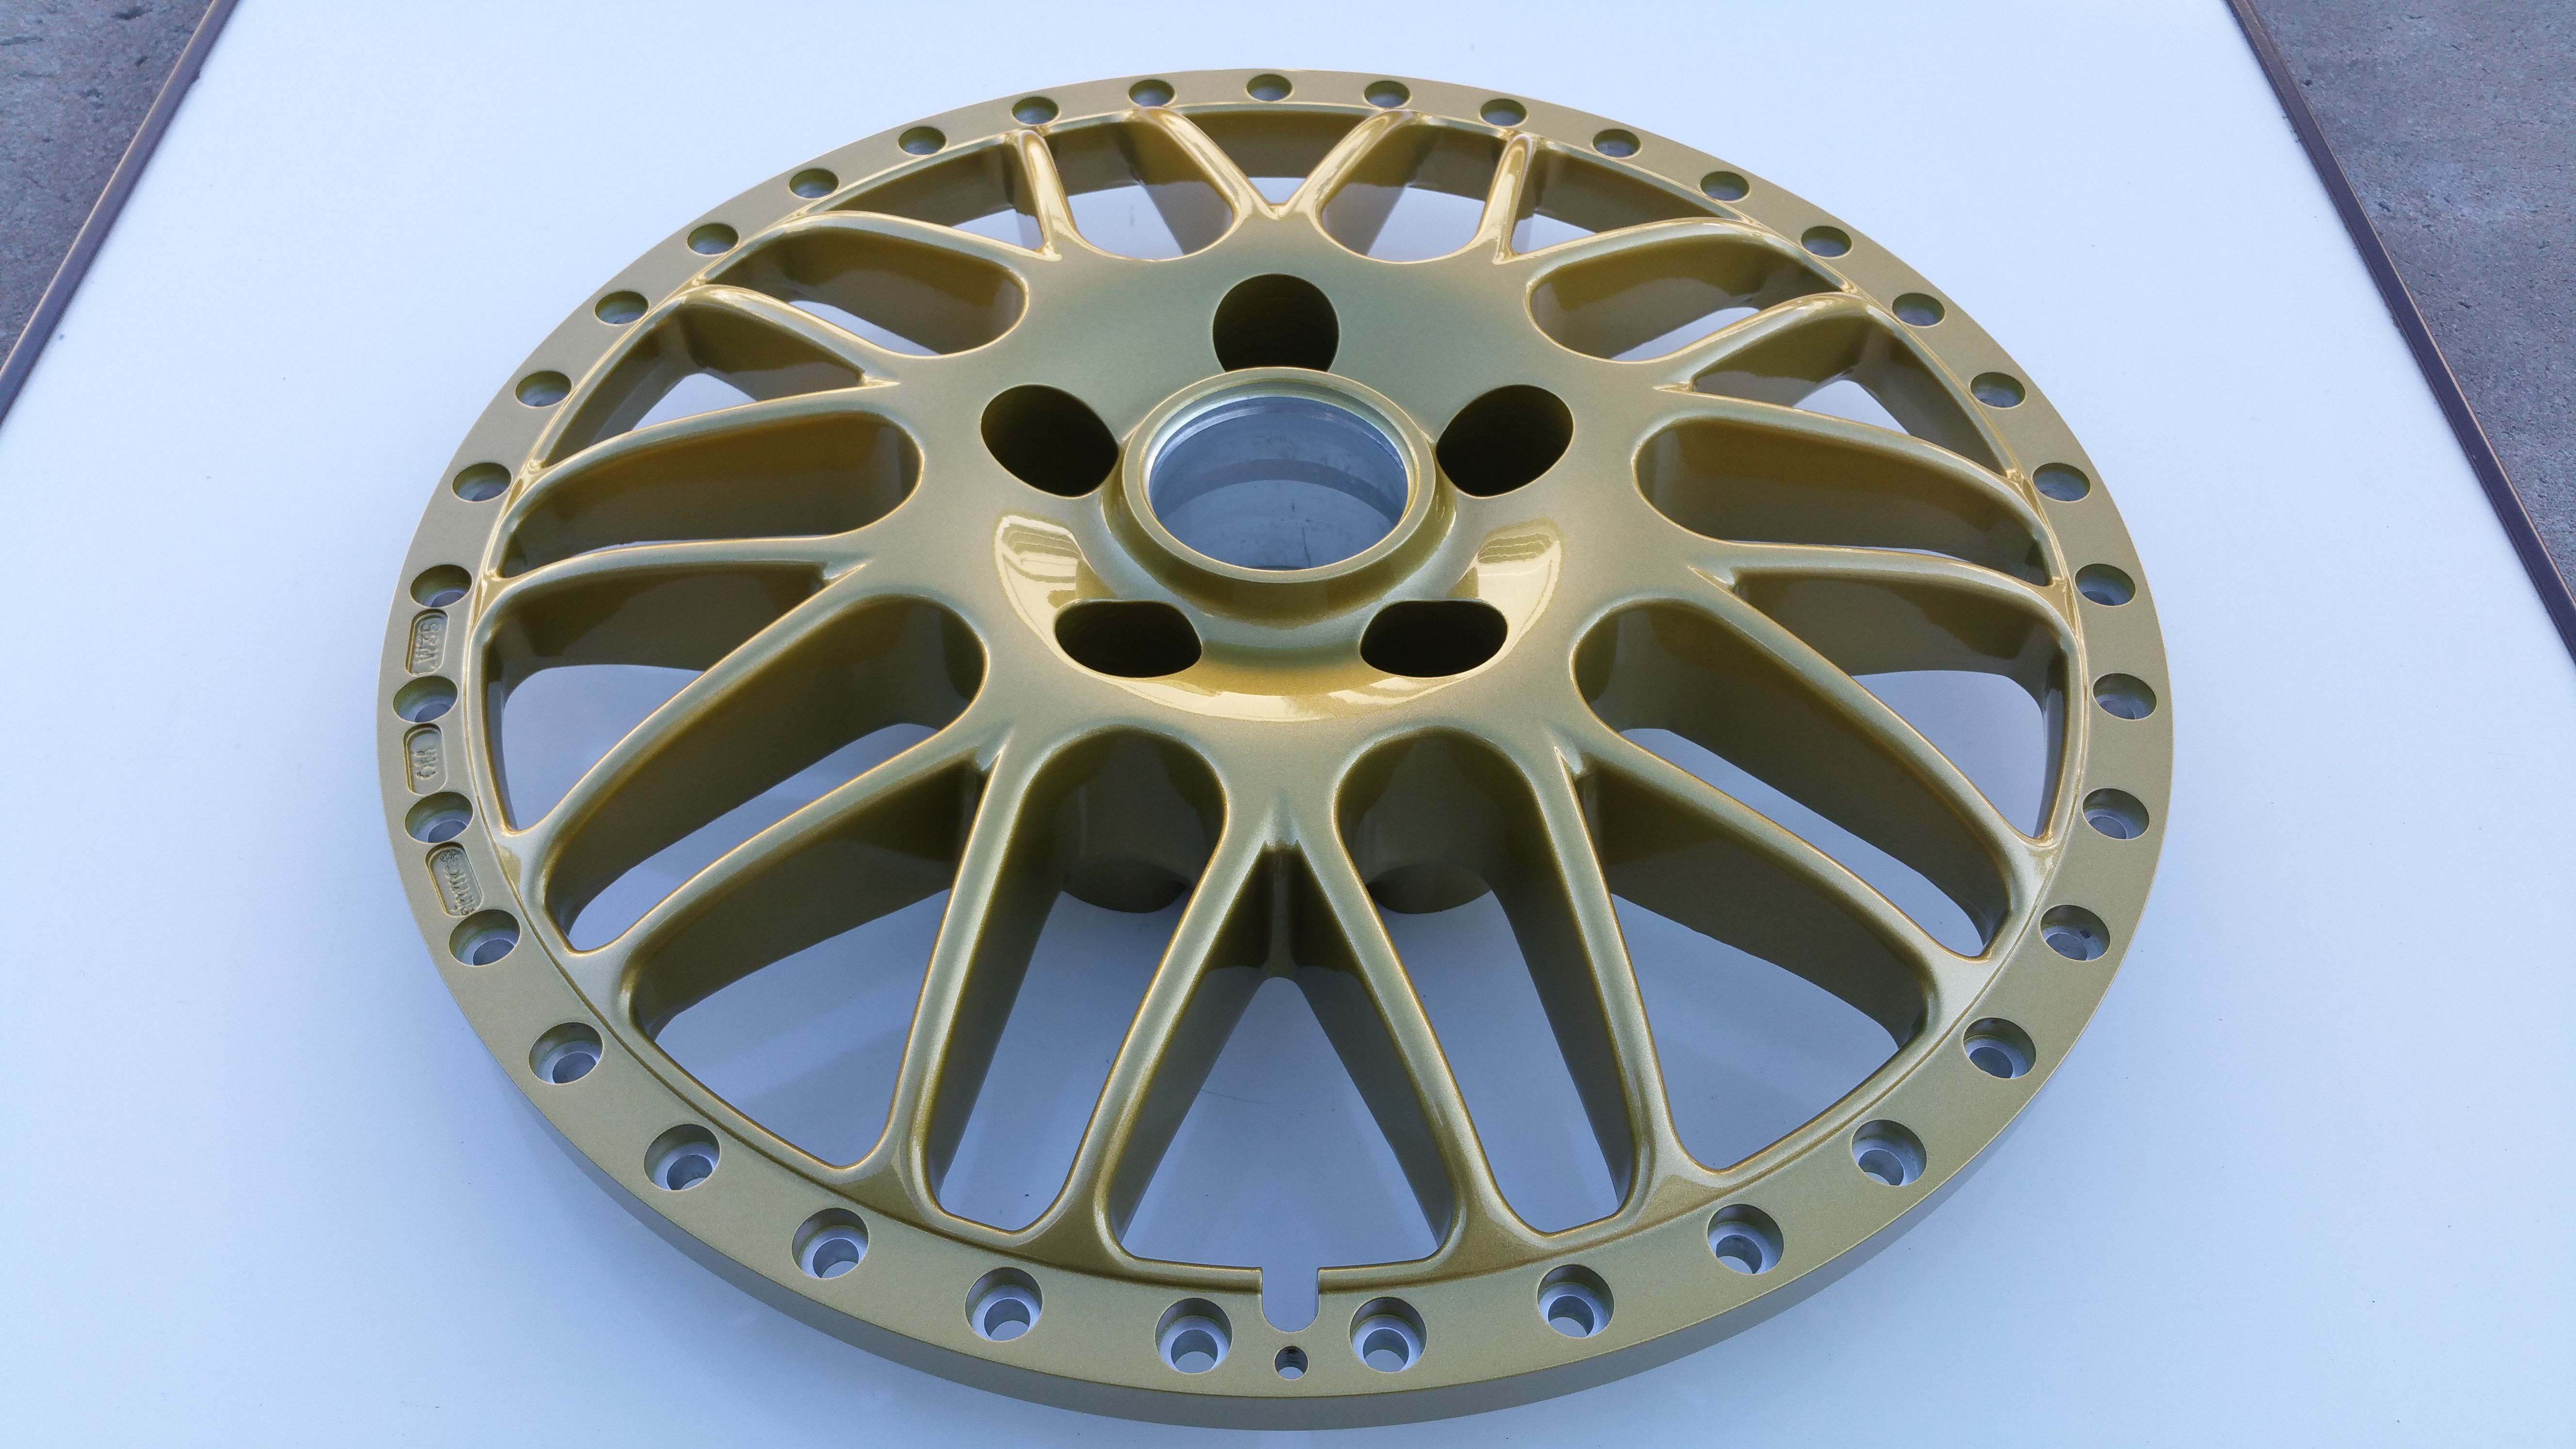 Simmons Wheels OM-18 painted in Simmons Gold  This was